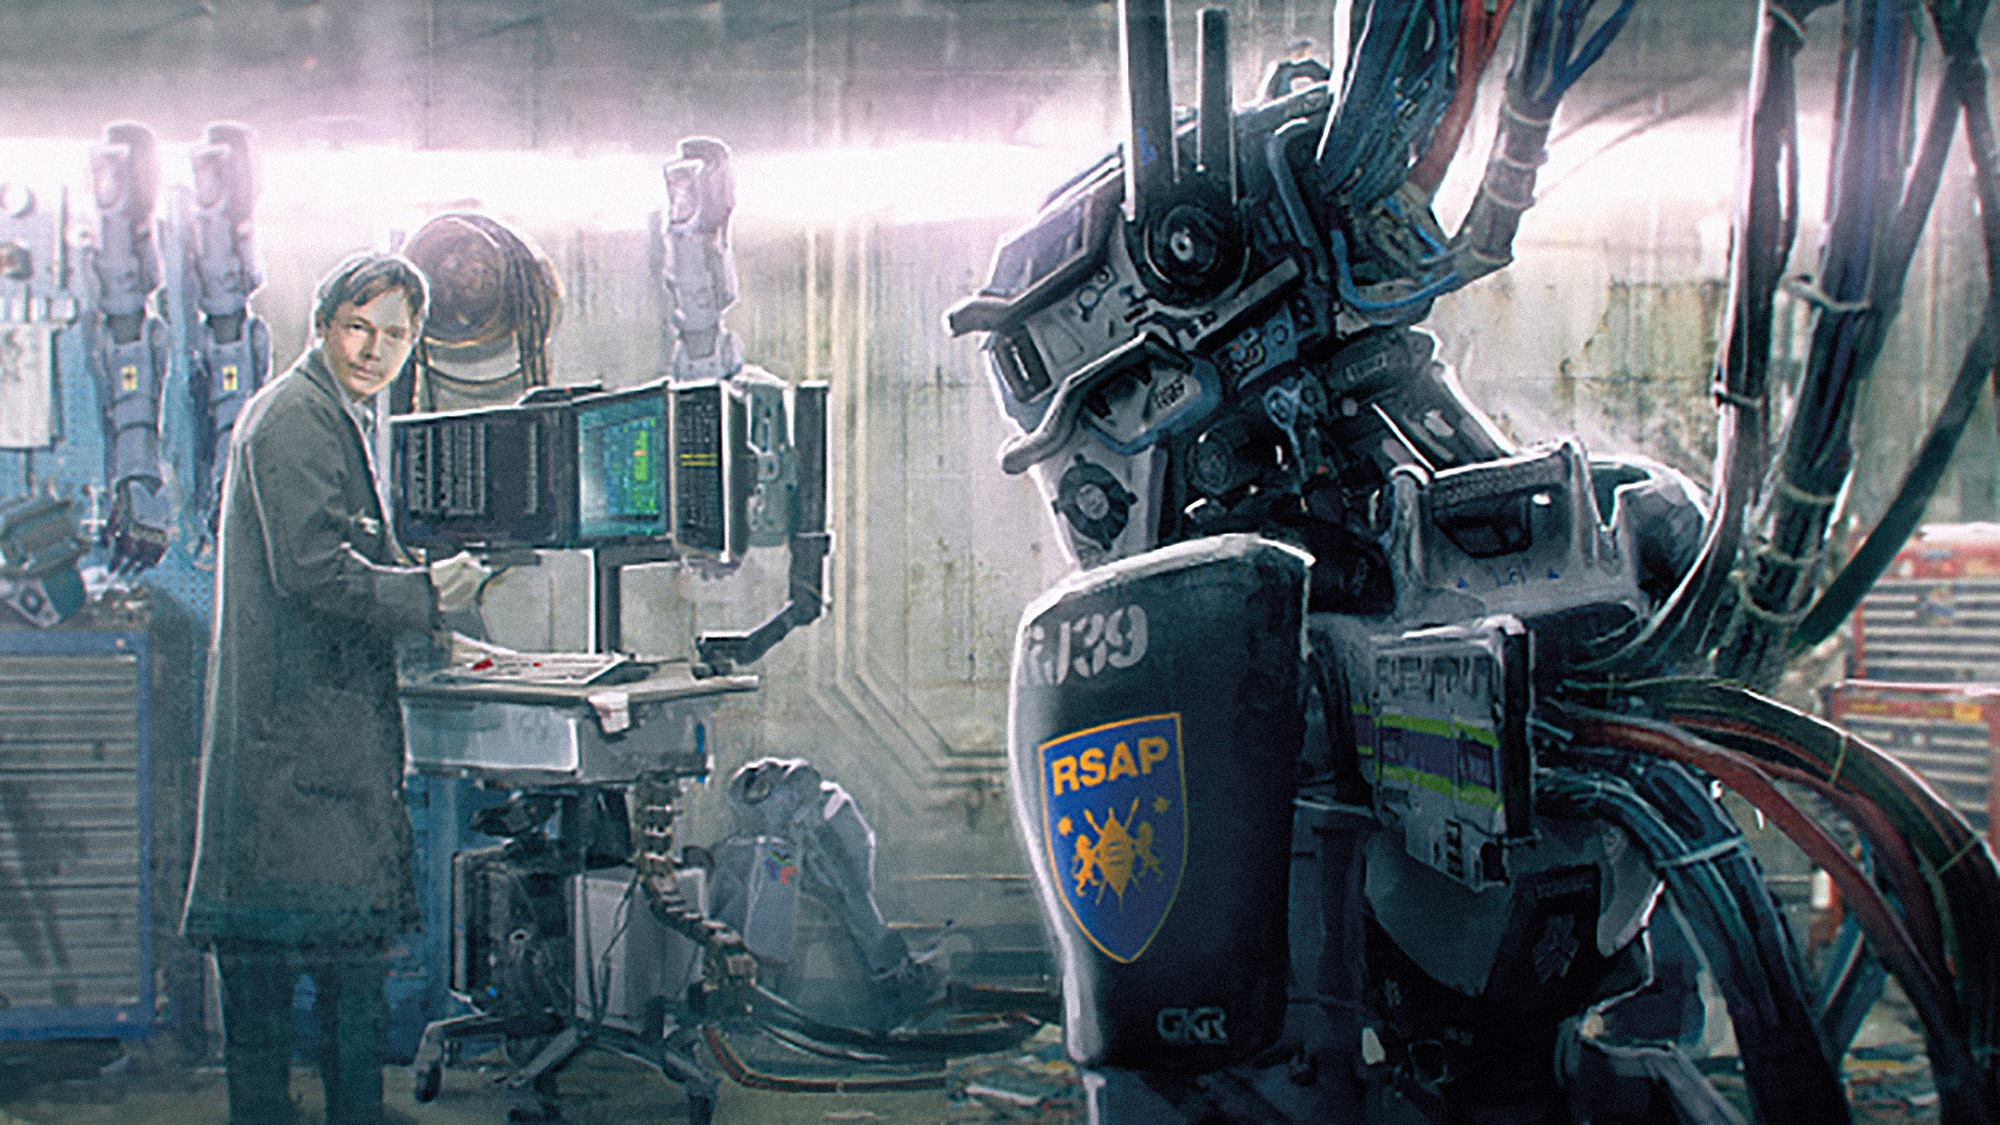 Chappie Concept Art by Ben Mauro